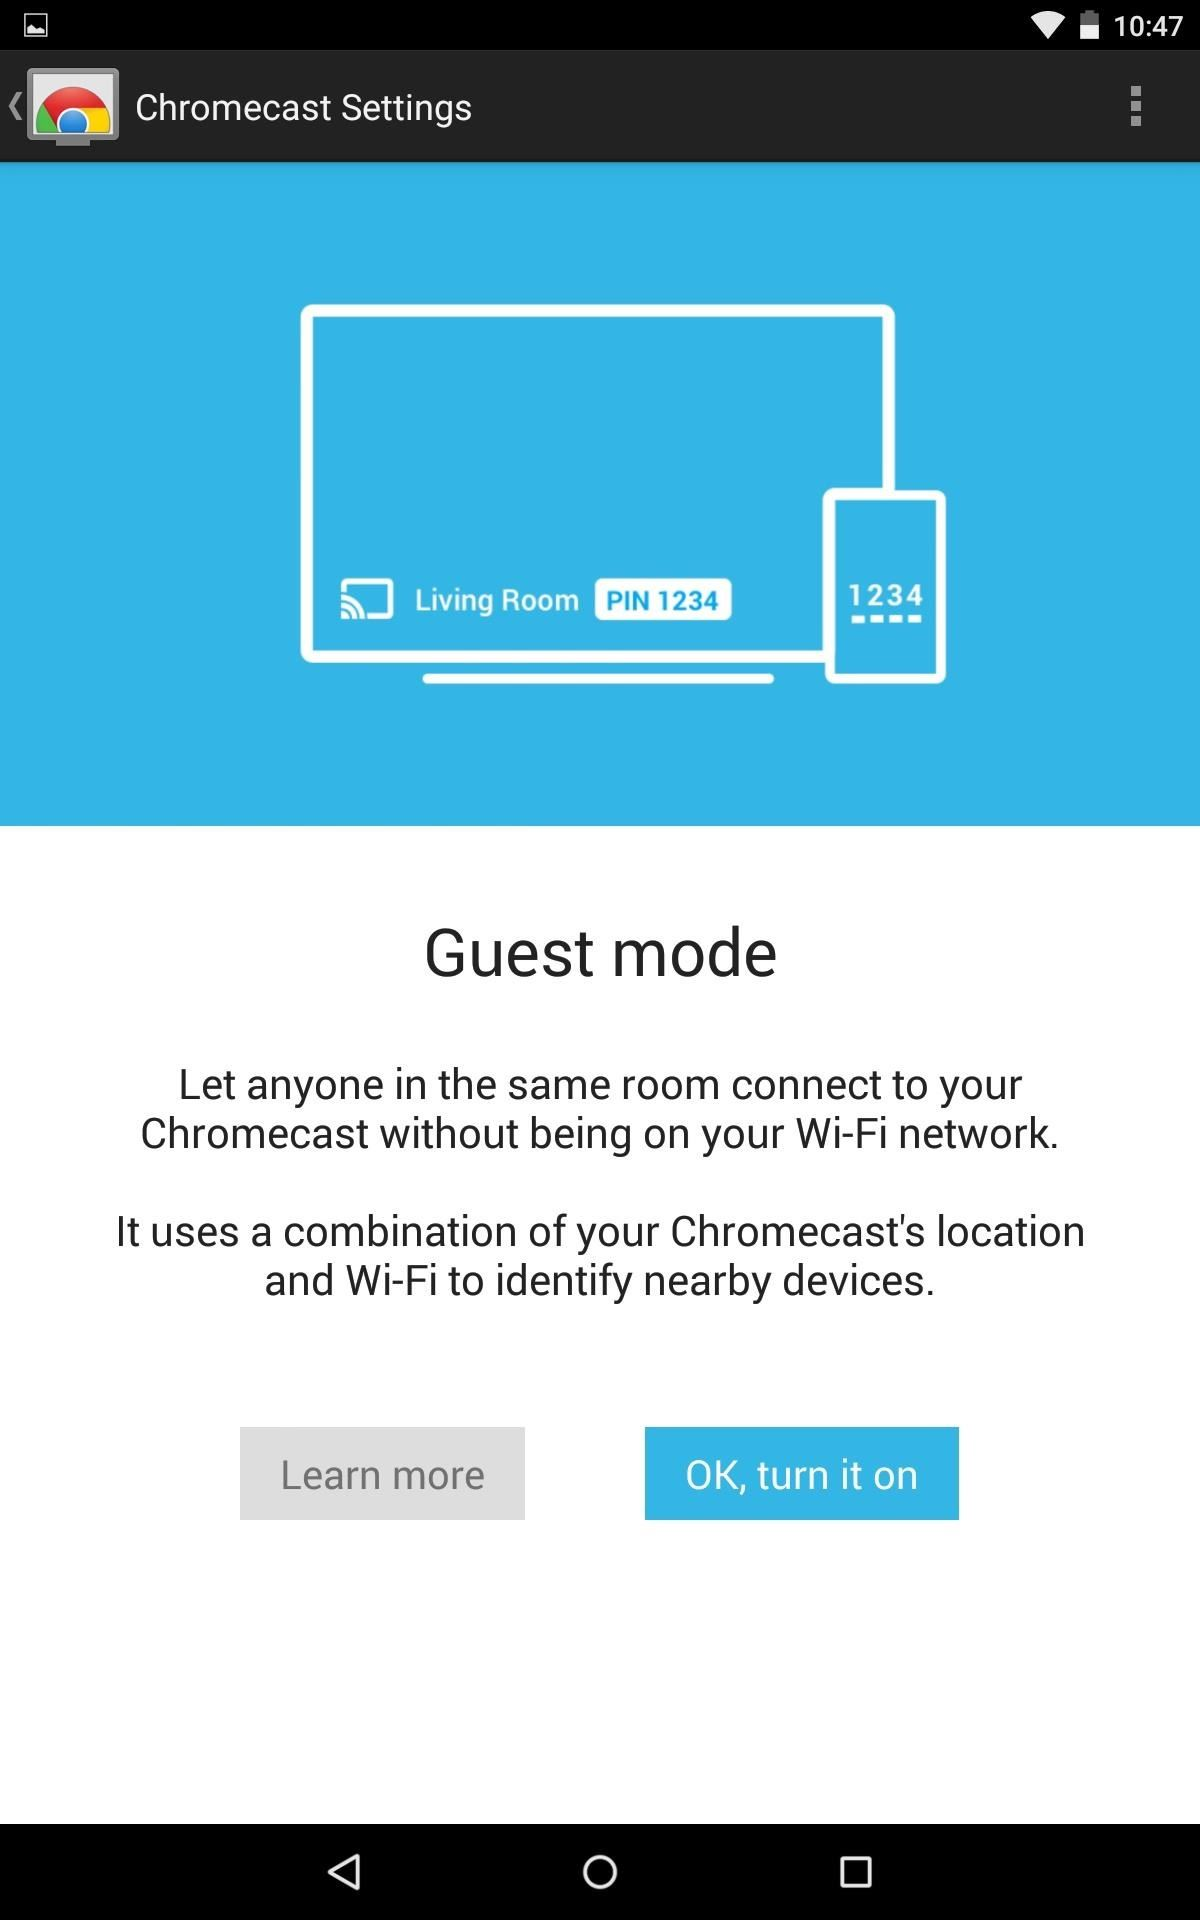 Stop Handing Out Your Wi-Fi Password by Enabling